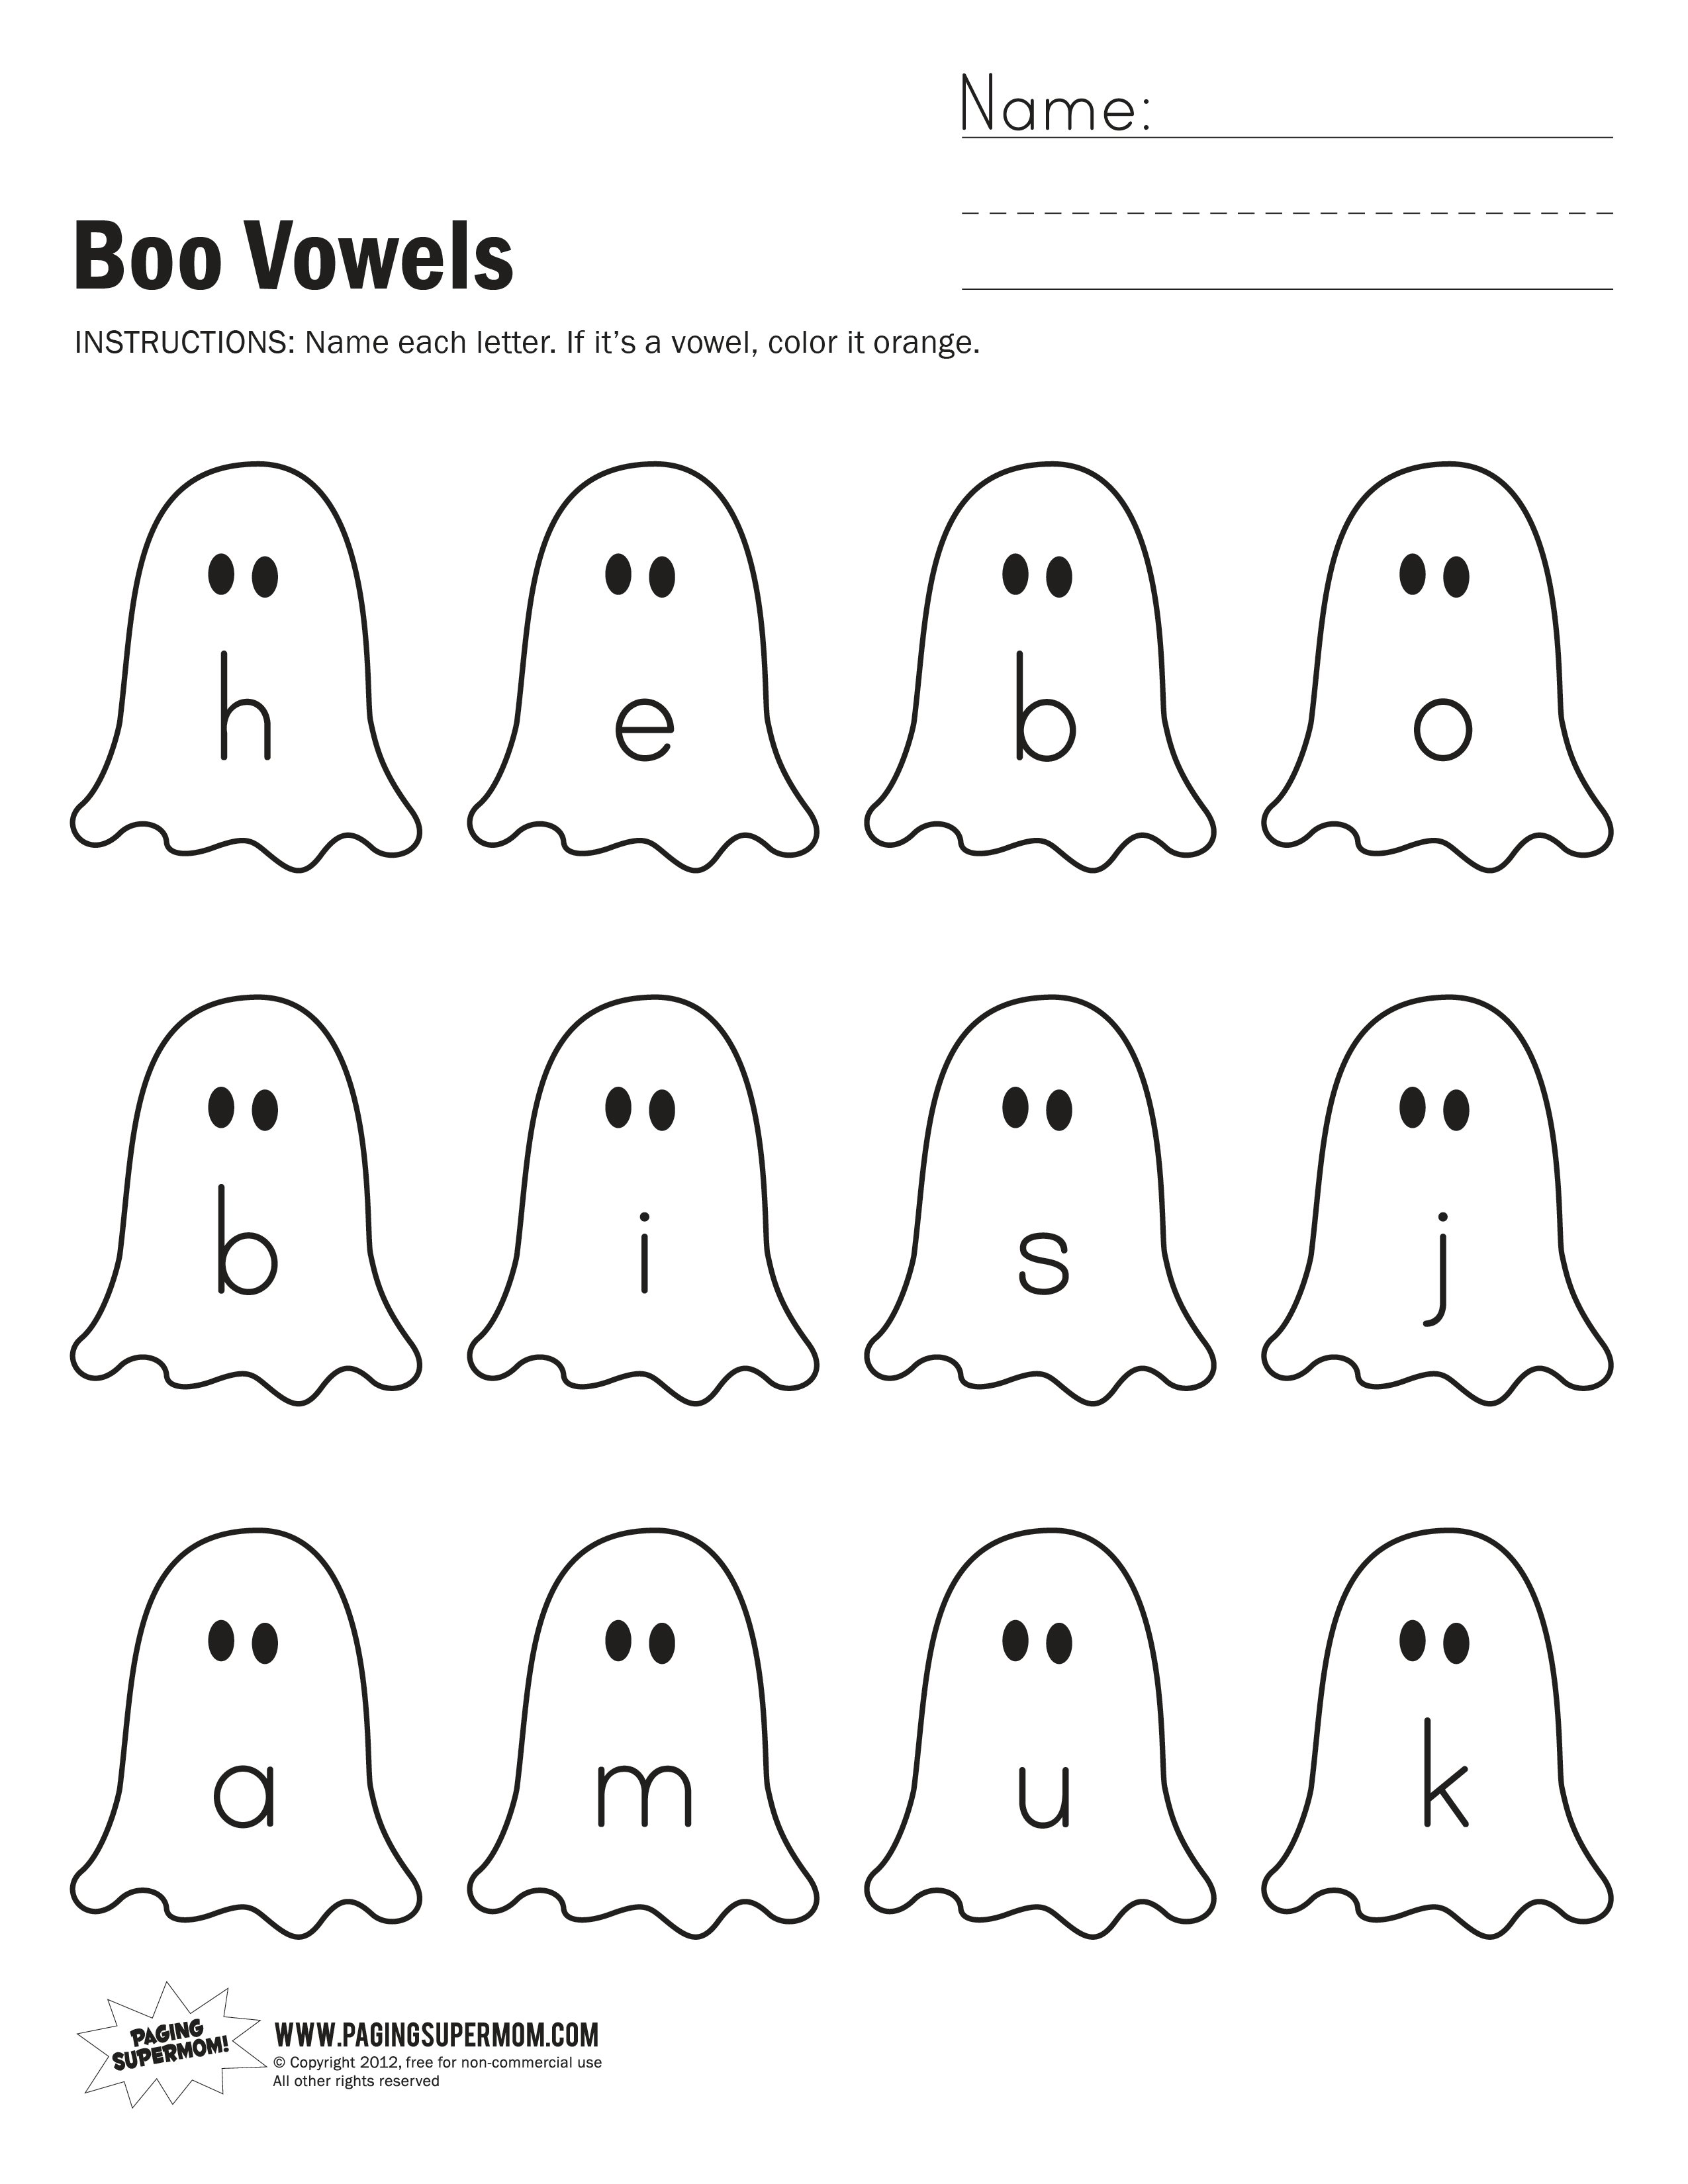 Worksheet Worksheets On Vowels worksheets on vowels laptuoso boo worksheet paging supermom